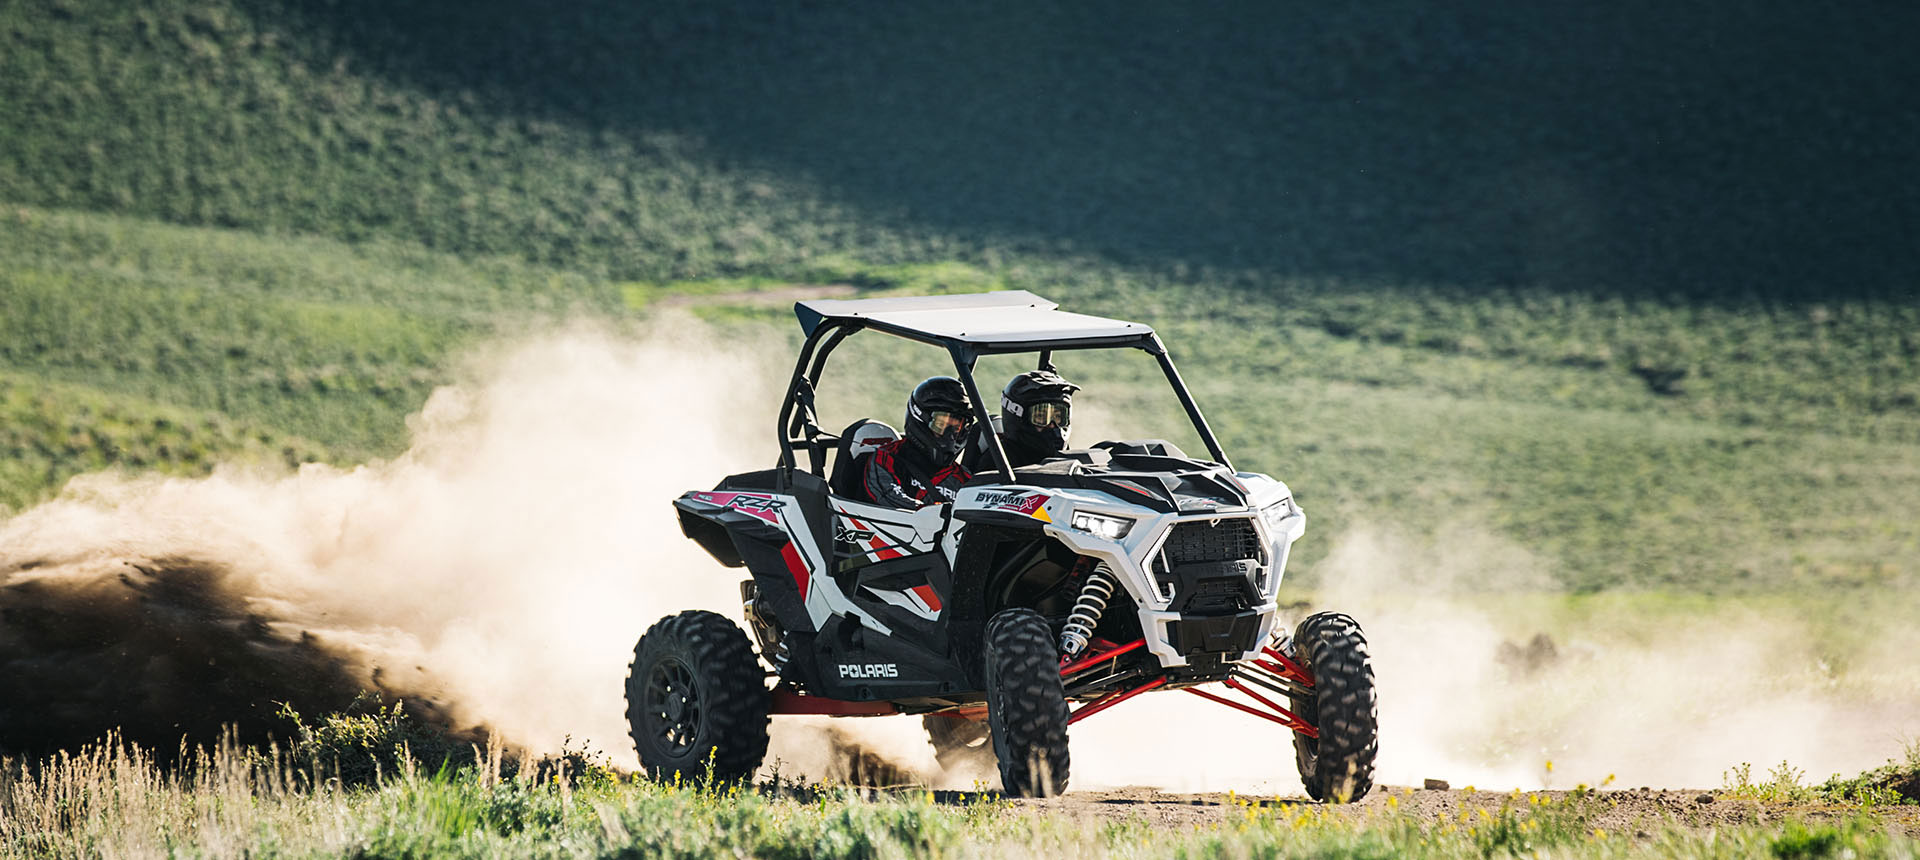 2019 Polaris RZR XP 1000 in Linton, Indiana